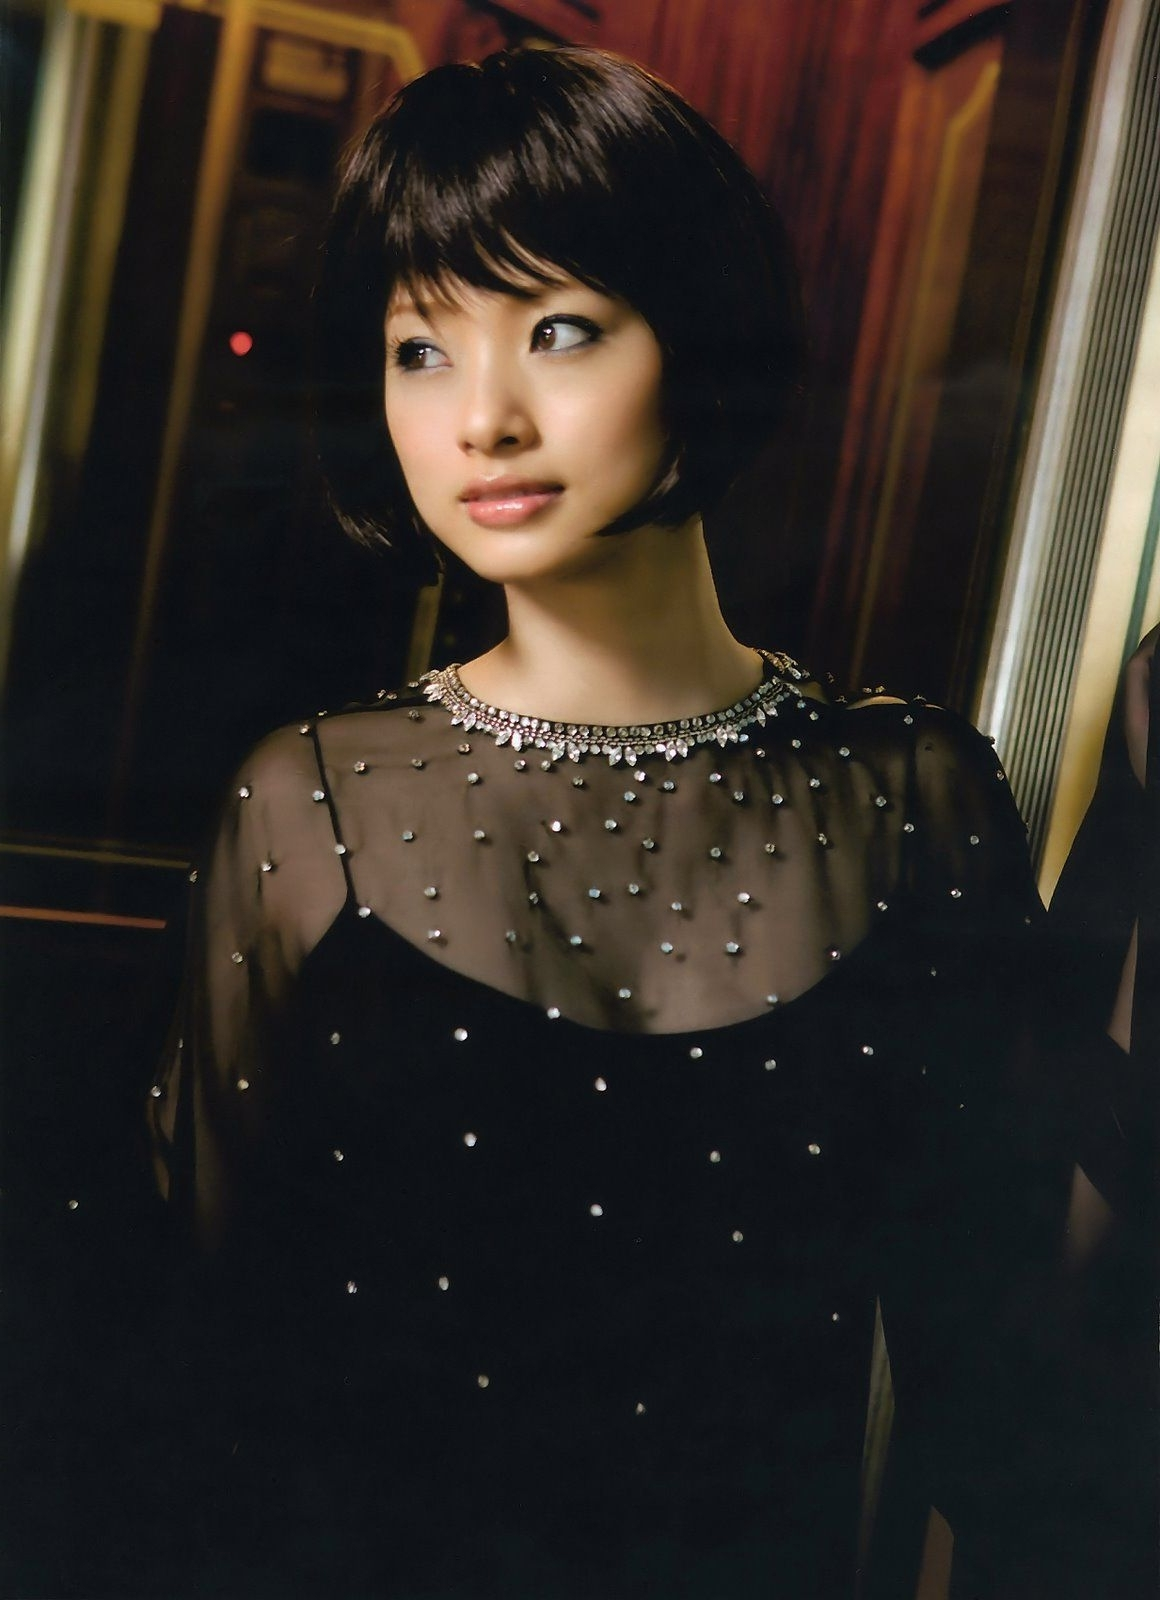 Favorite Japanese Wedding Hairstyles Intended For Waaah! Ueto Aya Looking Gorge With This Short Black Bob! #japanese (View 5 of 15)